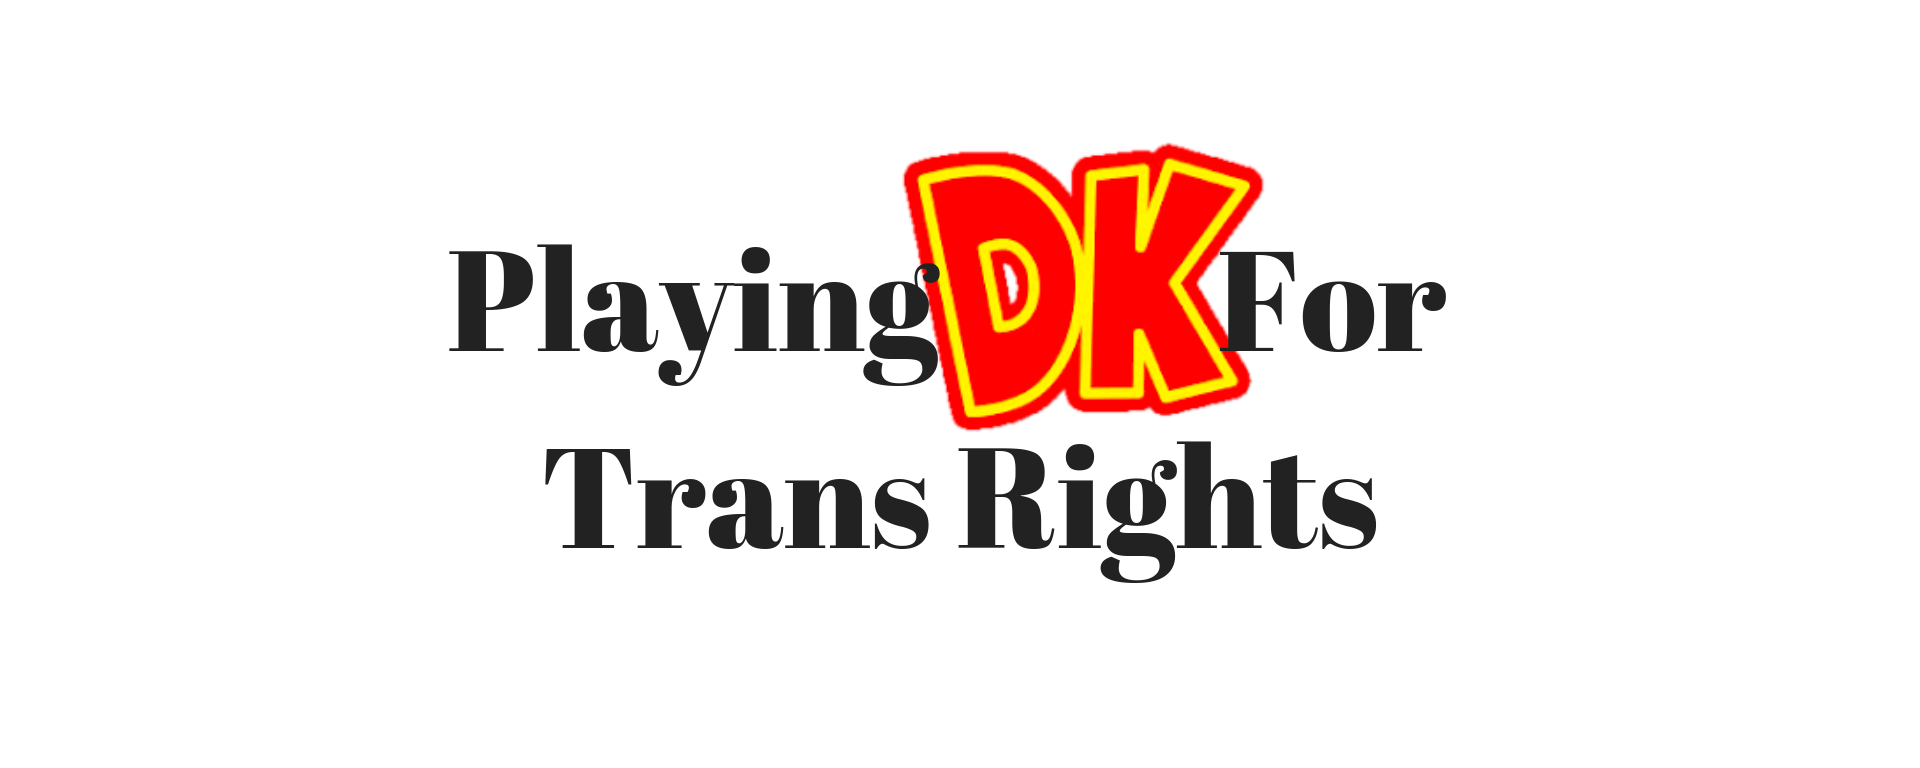 Playing Donkey Kong for Trans Rights